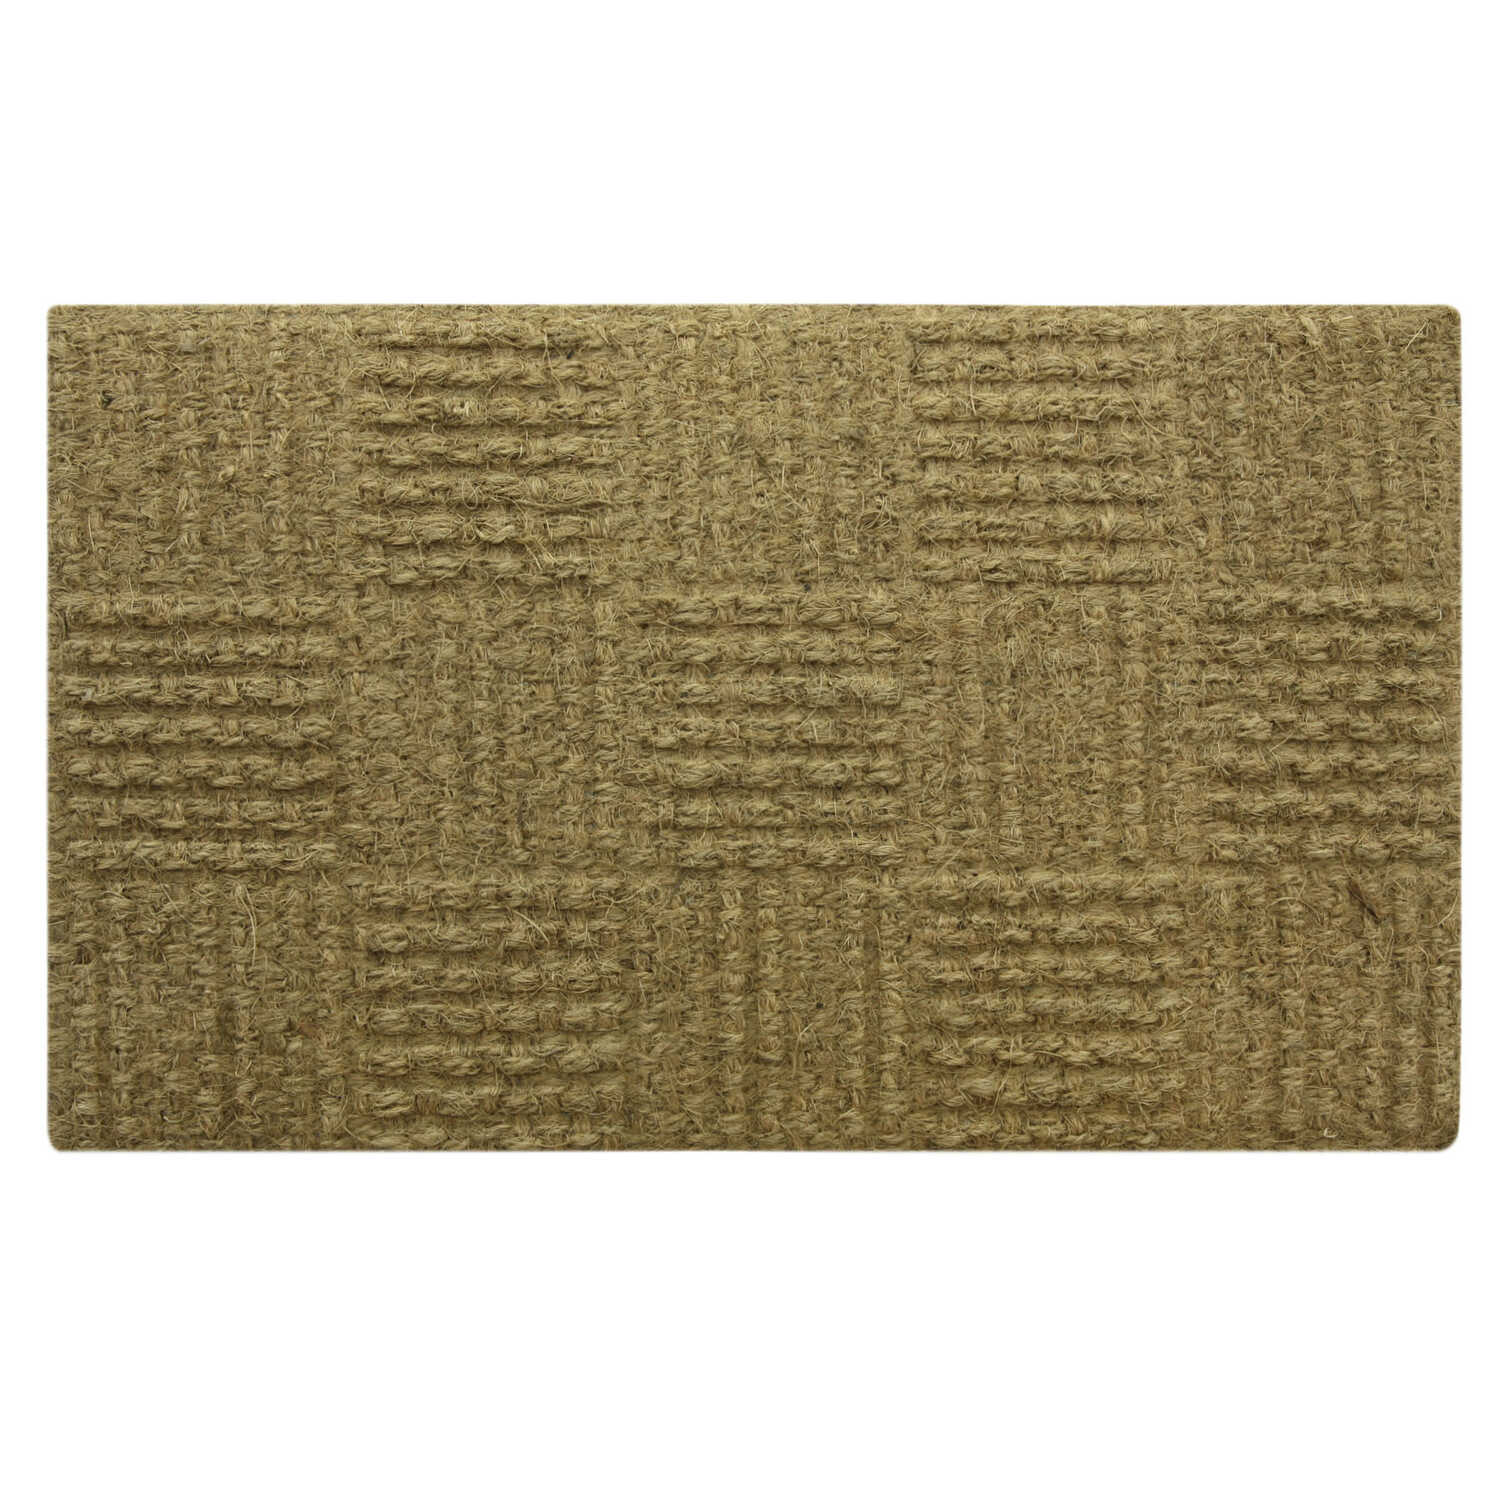 Bacova  Brown  Coir  Door Mat  30 in. L x 18 in. W